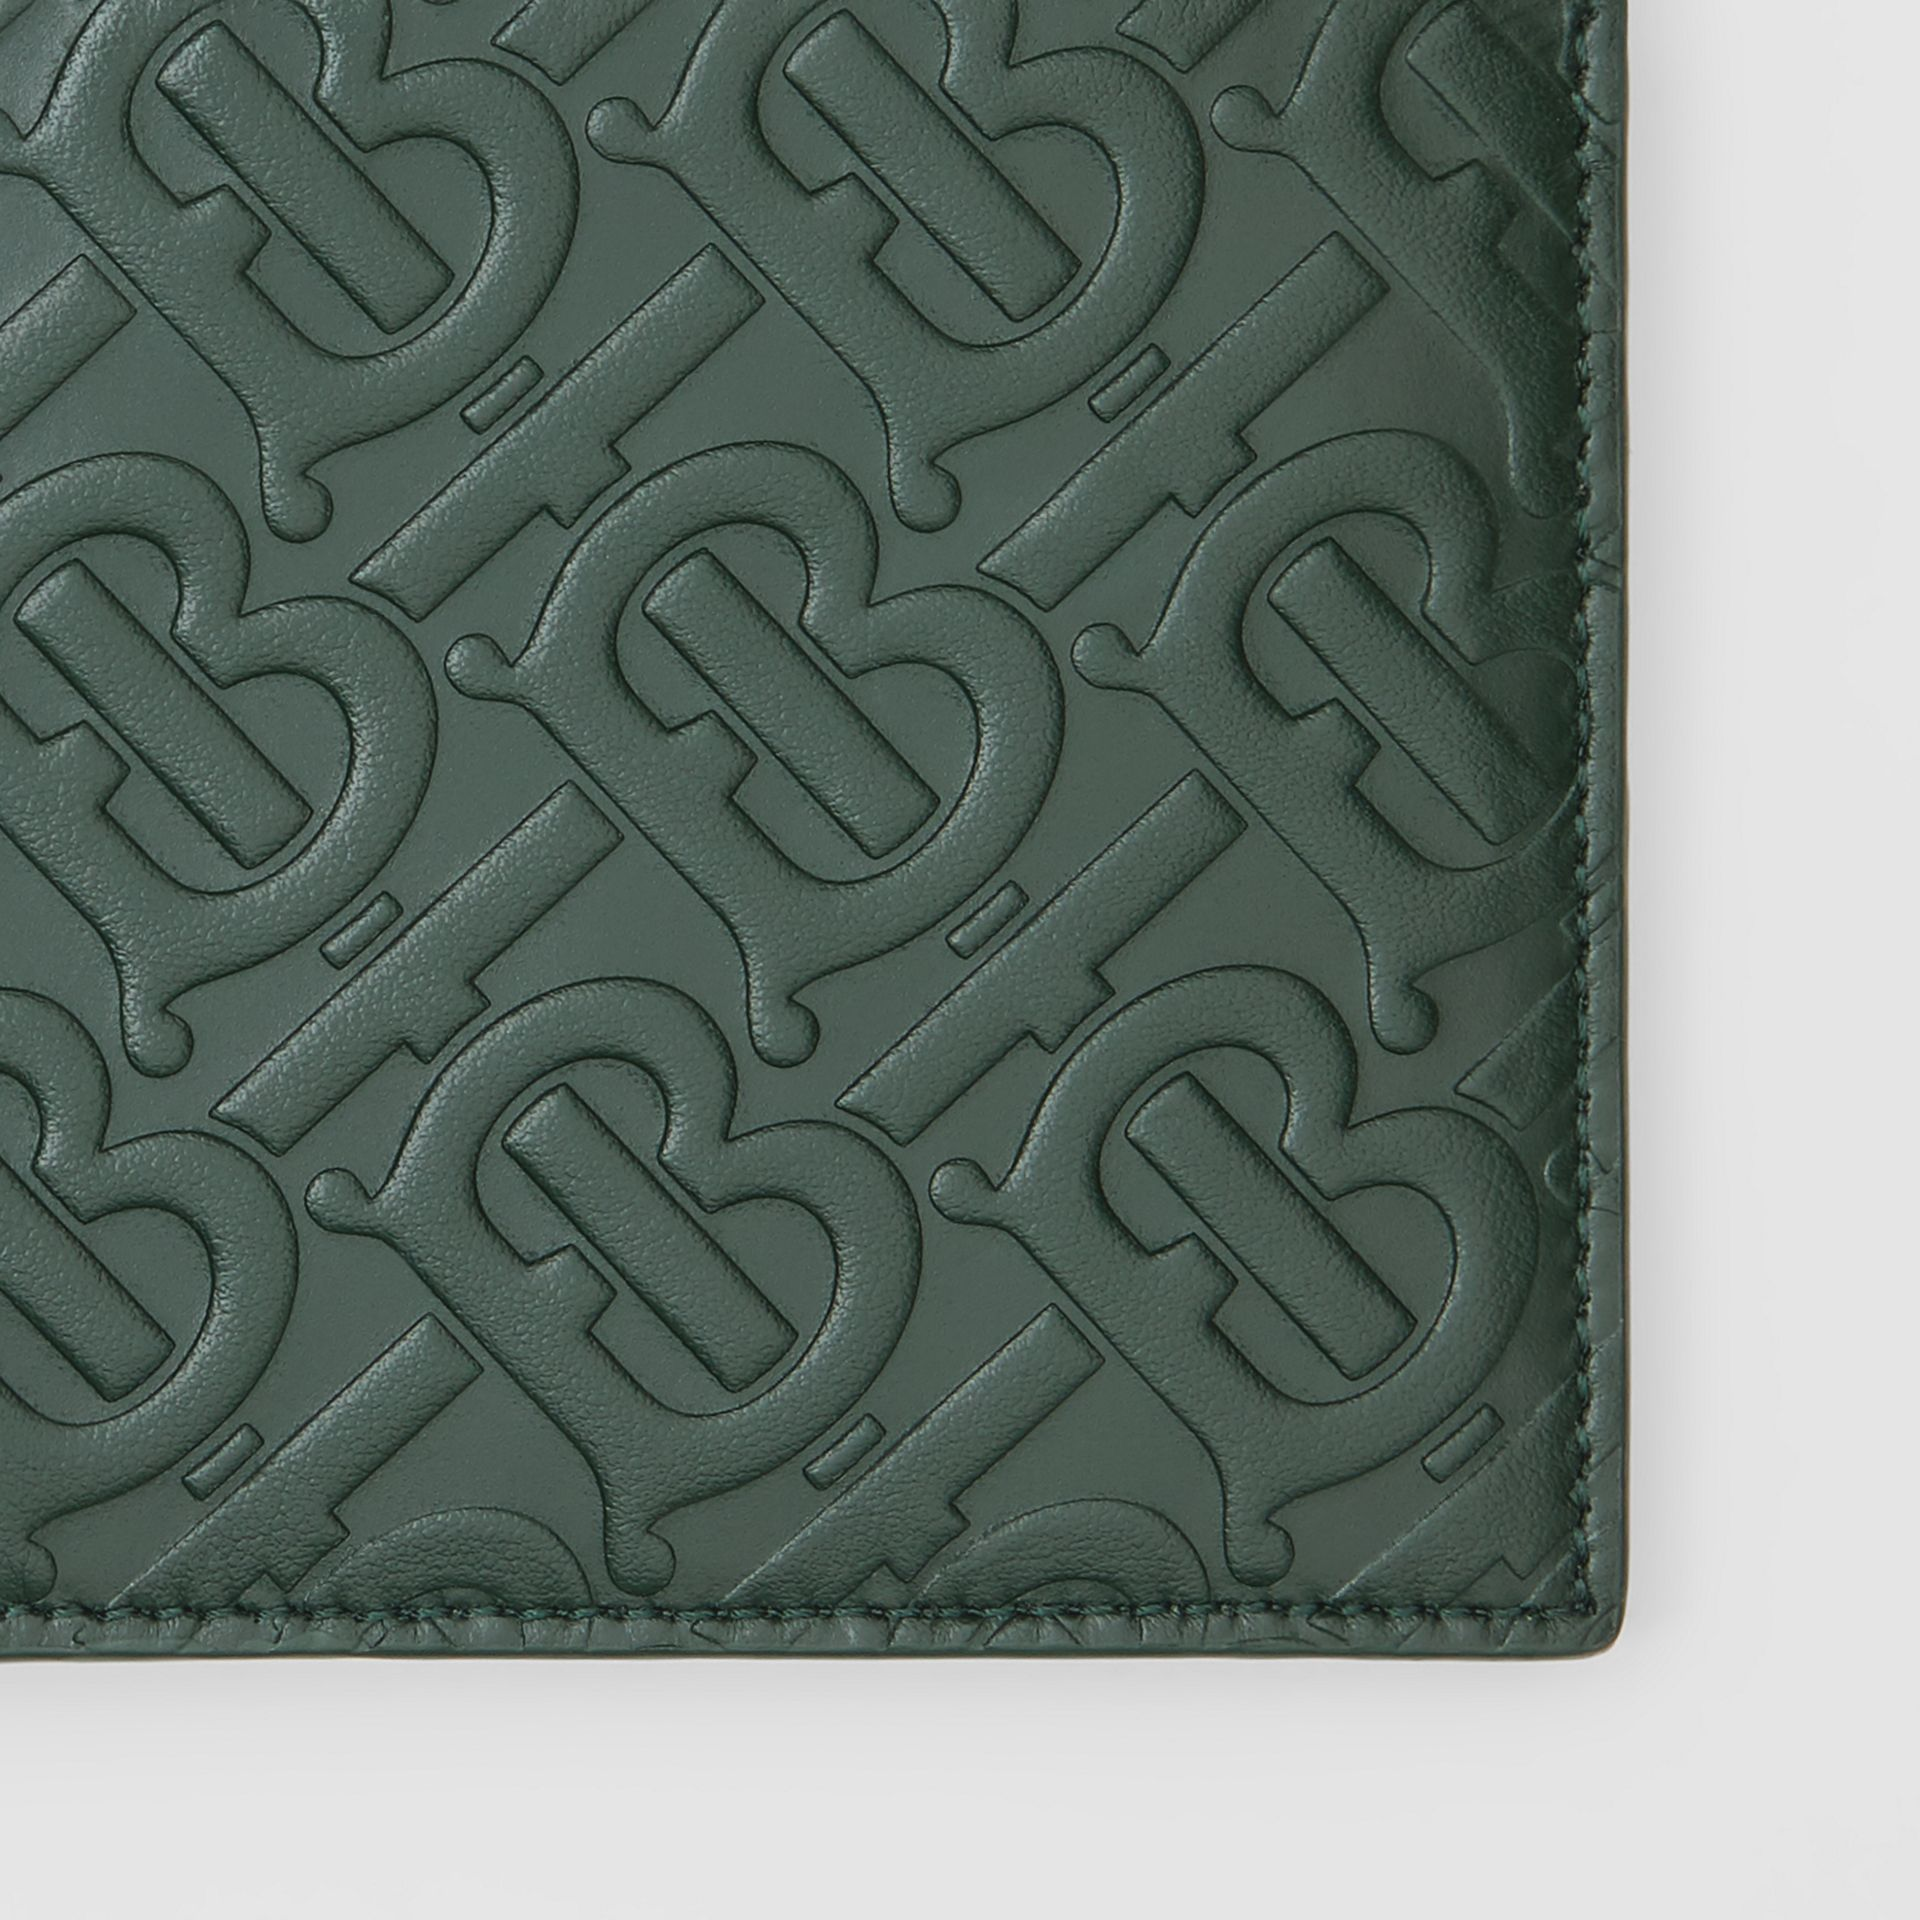 Monogram Leather International Bifold Wallet in Dark Pine Green - Men | Burberry - gallery image 1